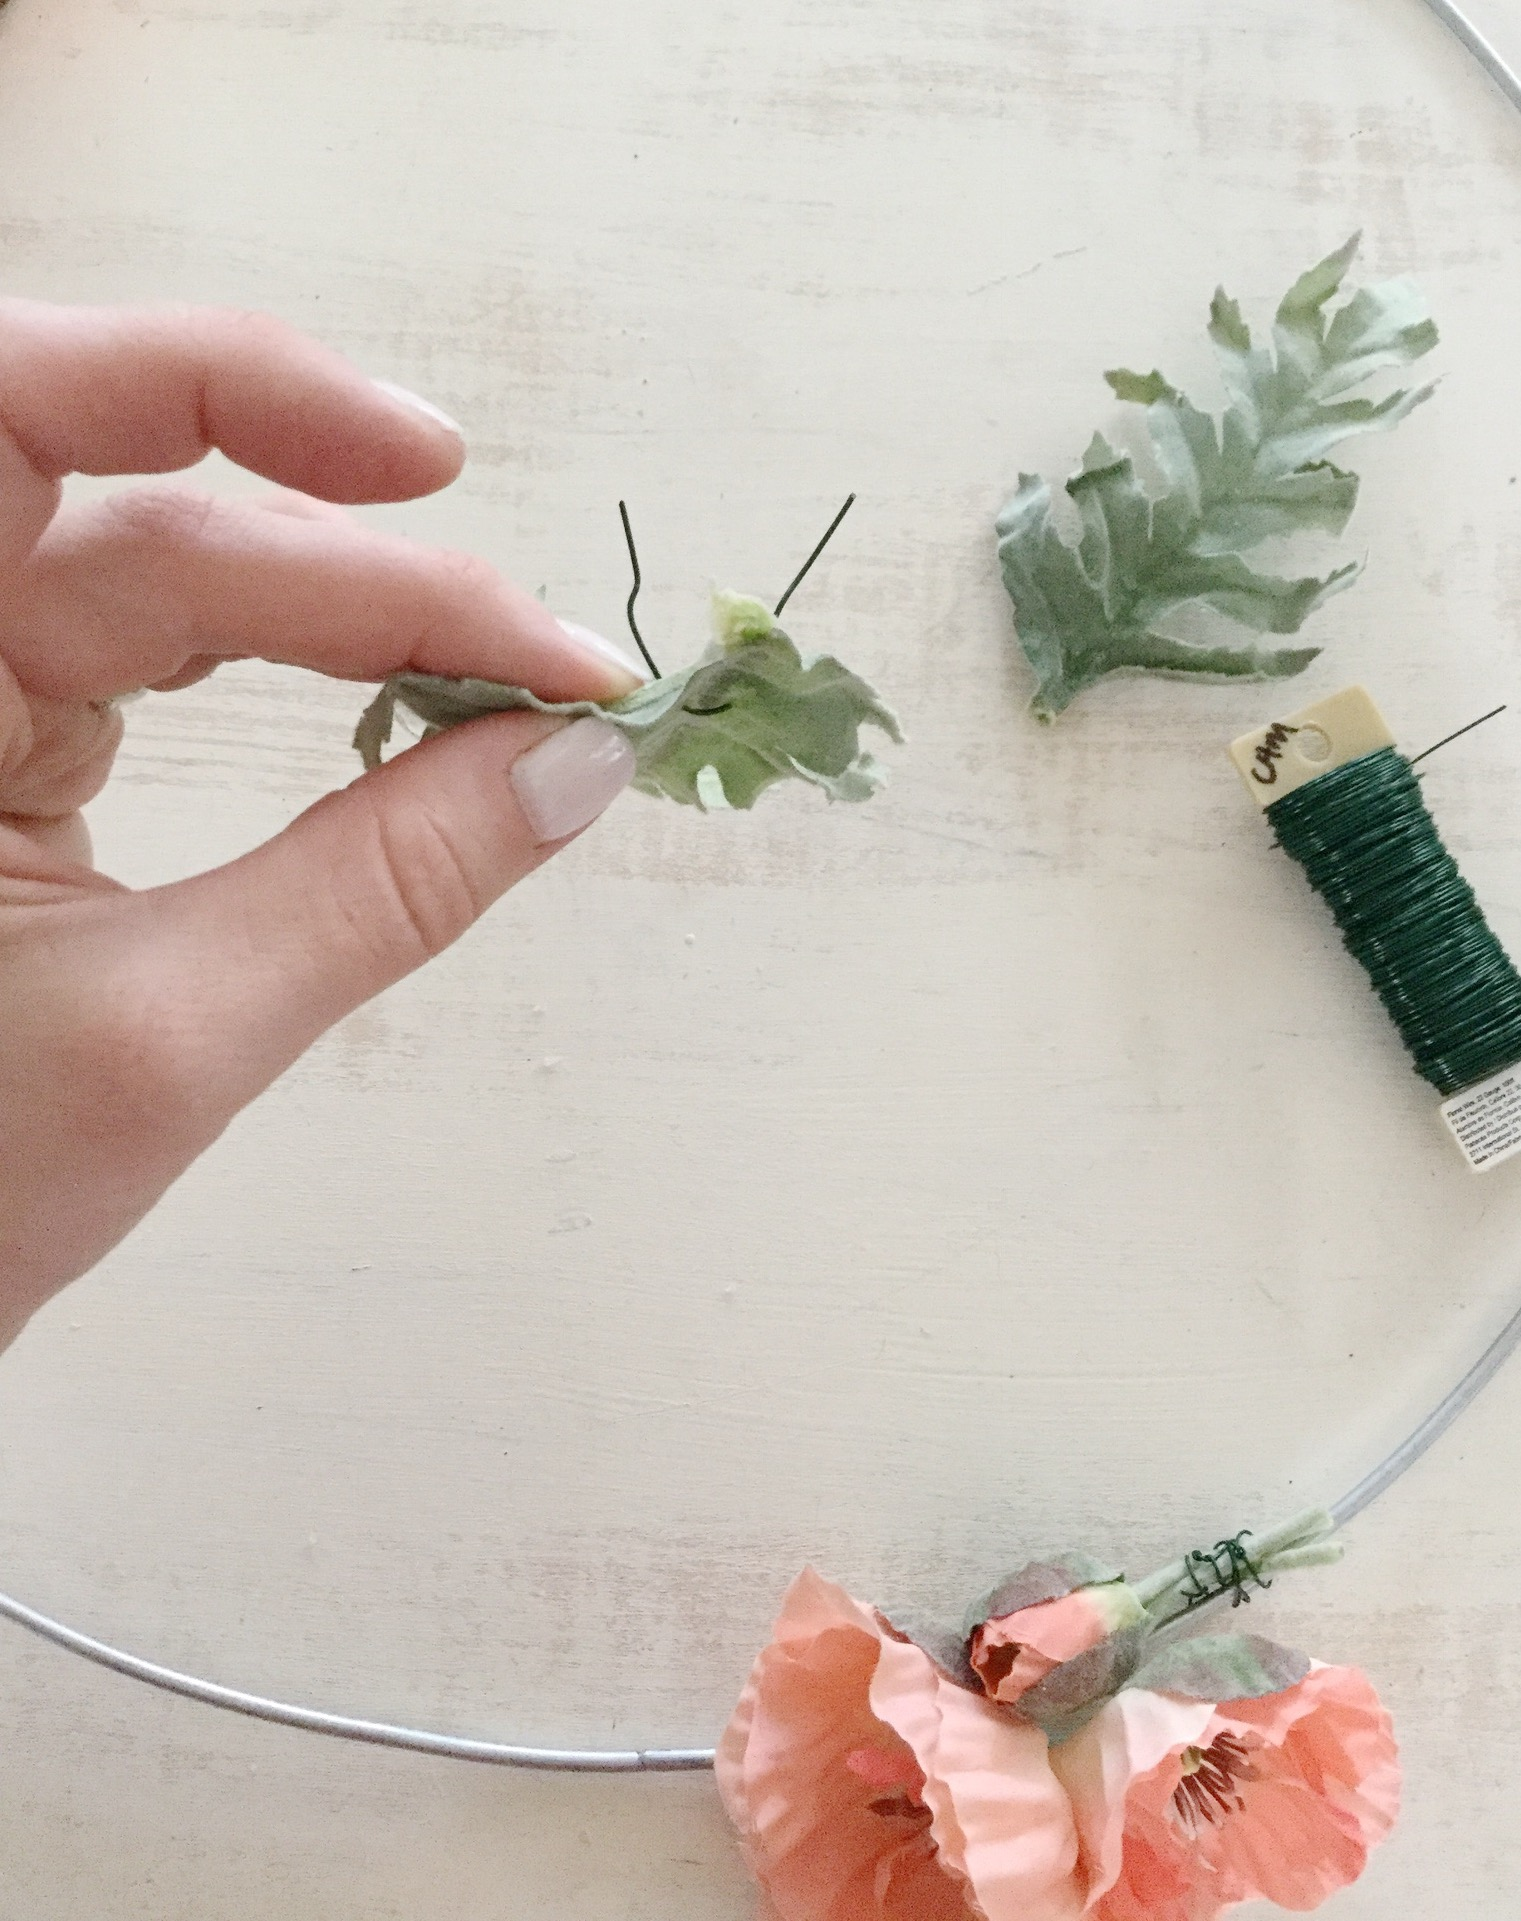 Step 4: Add greenery - This step is optional as you may choose flowers that stand well alone. However, if you have leaves or other greenery you want add, simply poke a piece of floral wire through the leaves so that the wire loops over the spine of the each leaf.